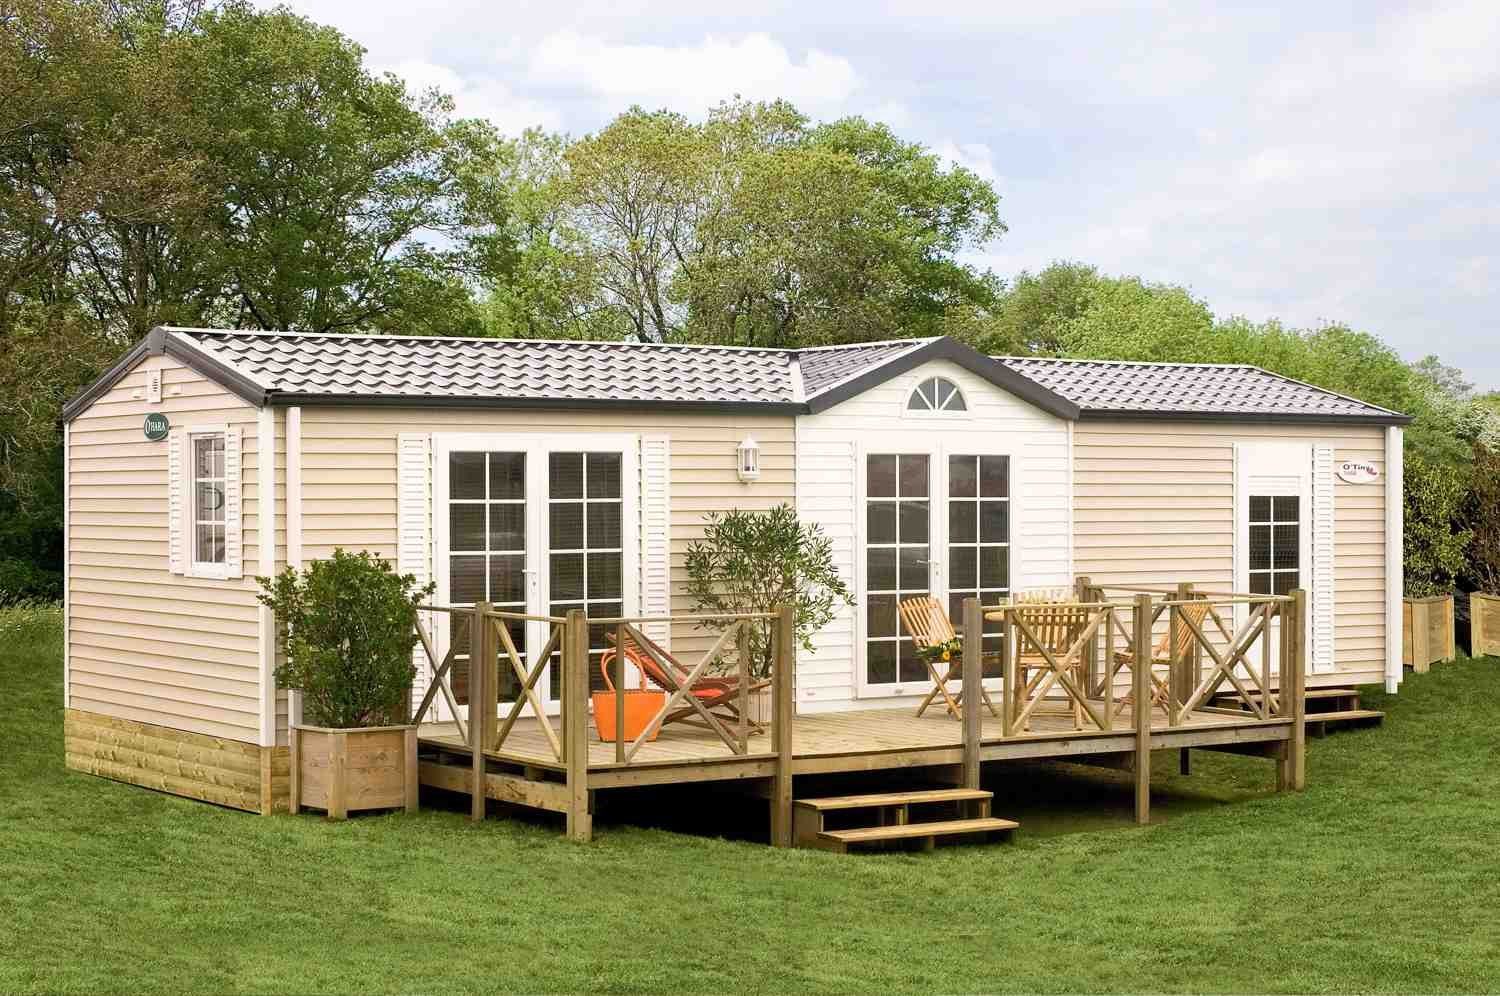 Manufactured Mobile Homes for Sale